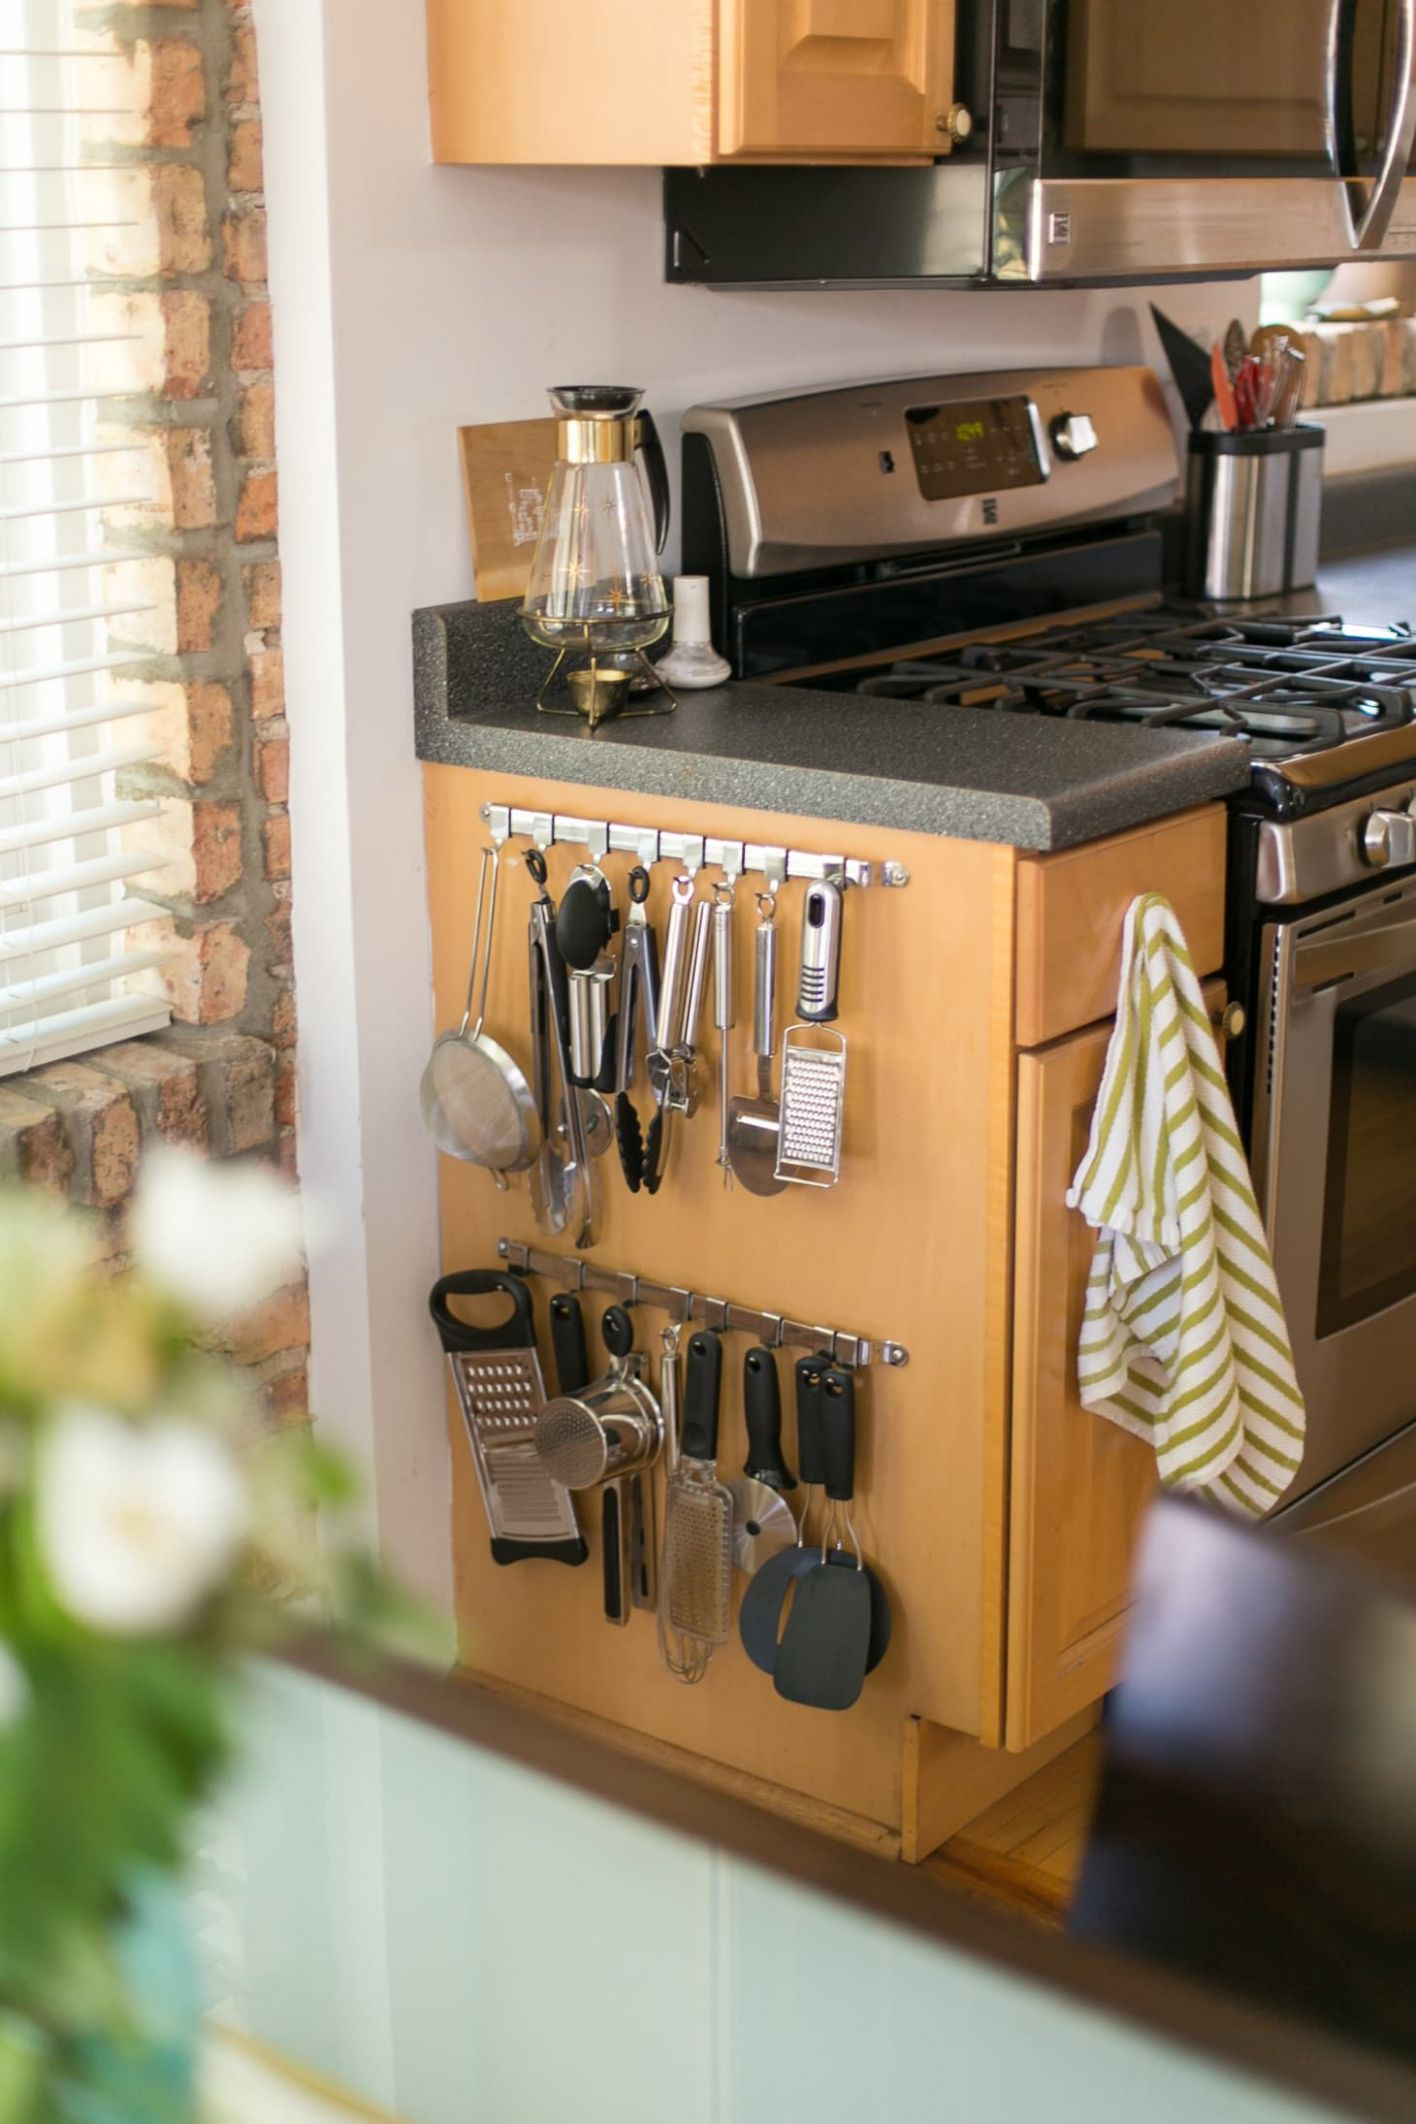 The 12 Best Storage Ideas for Small Kitchens | Kitchn